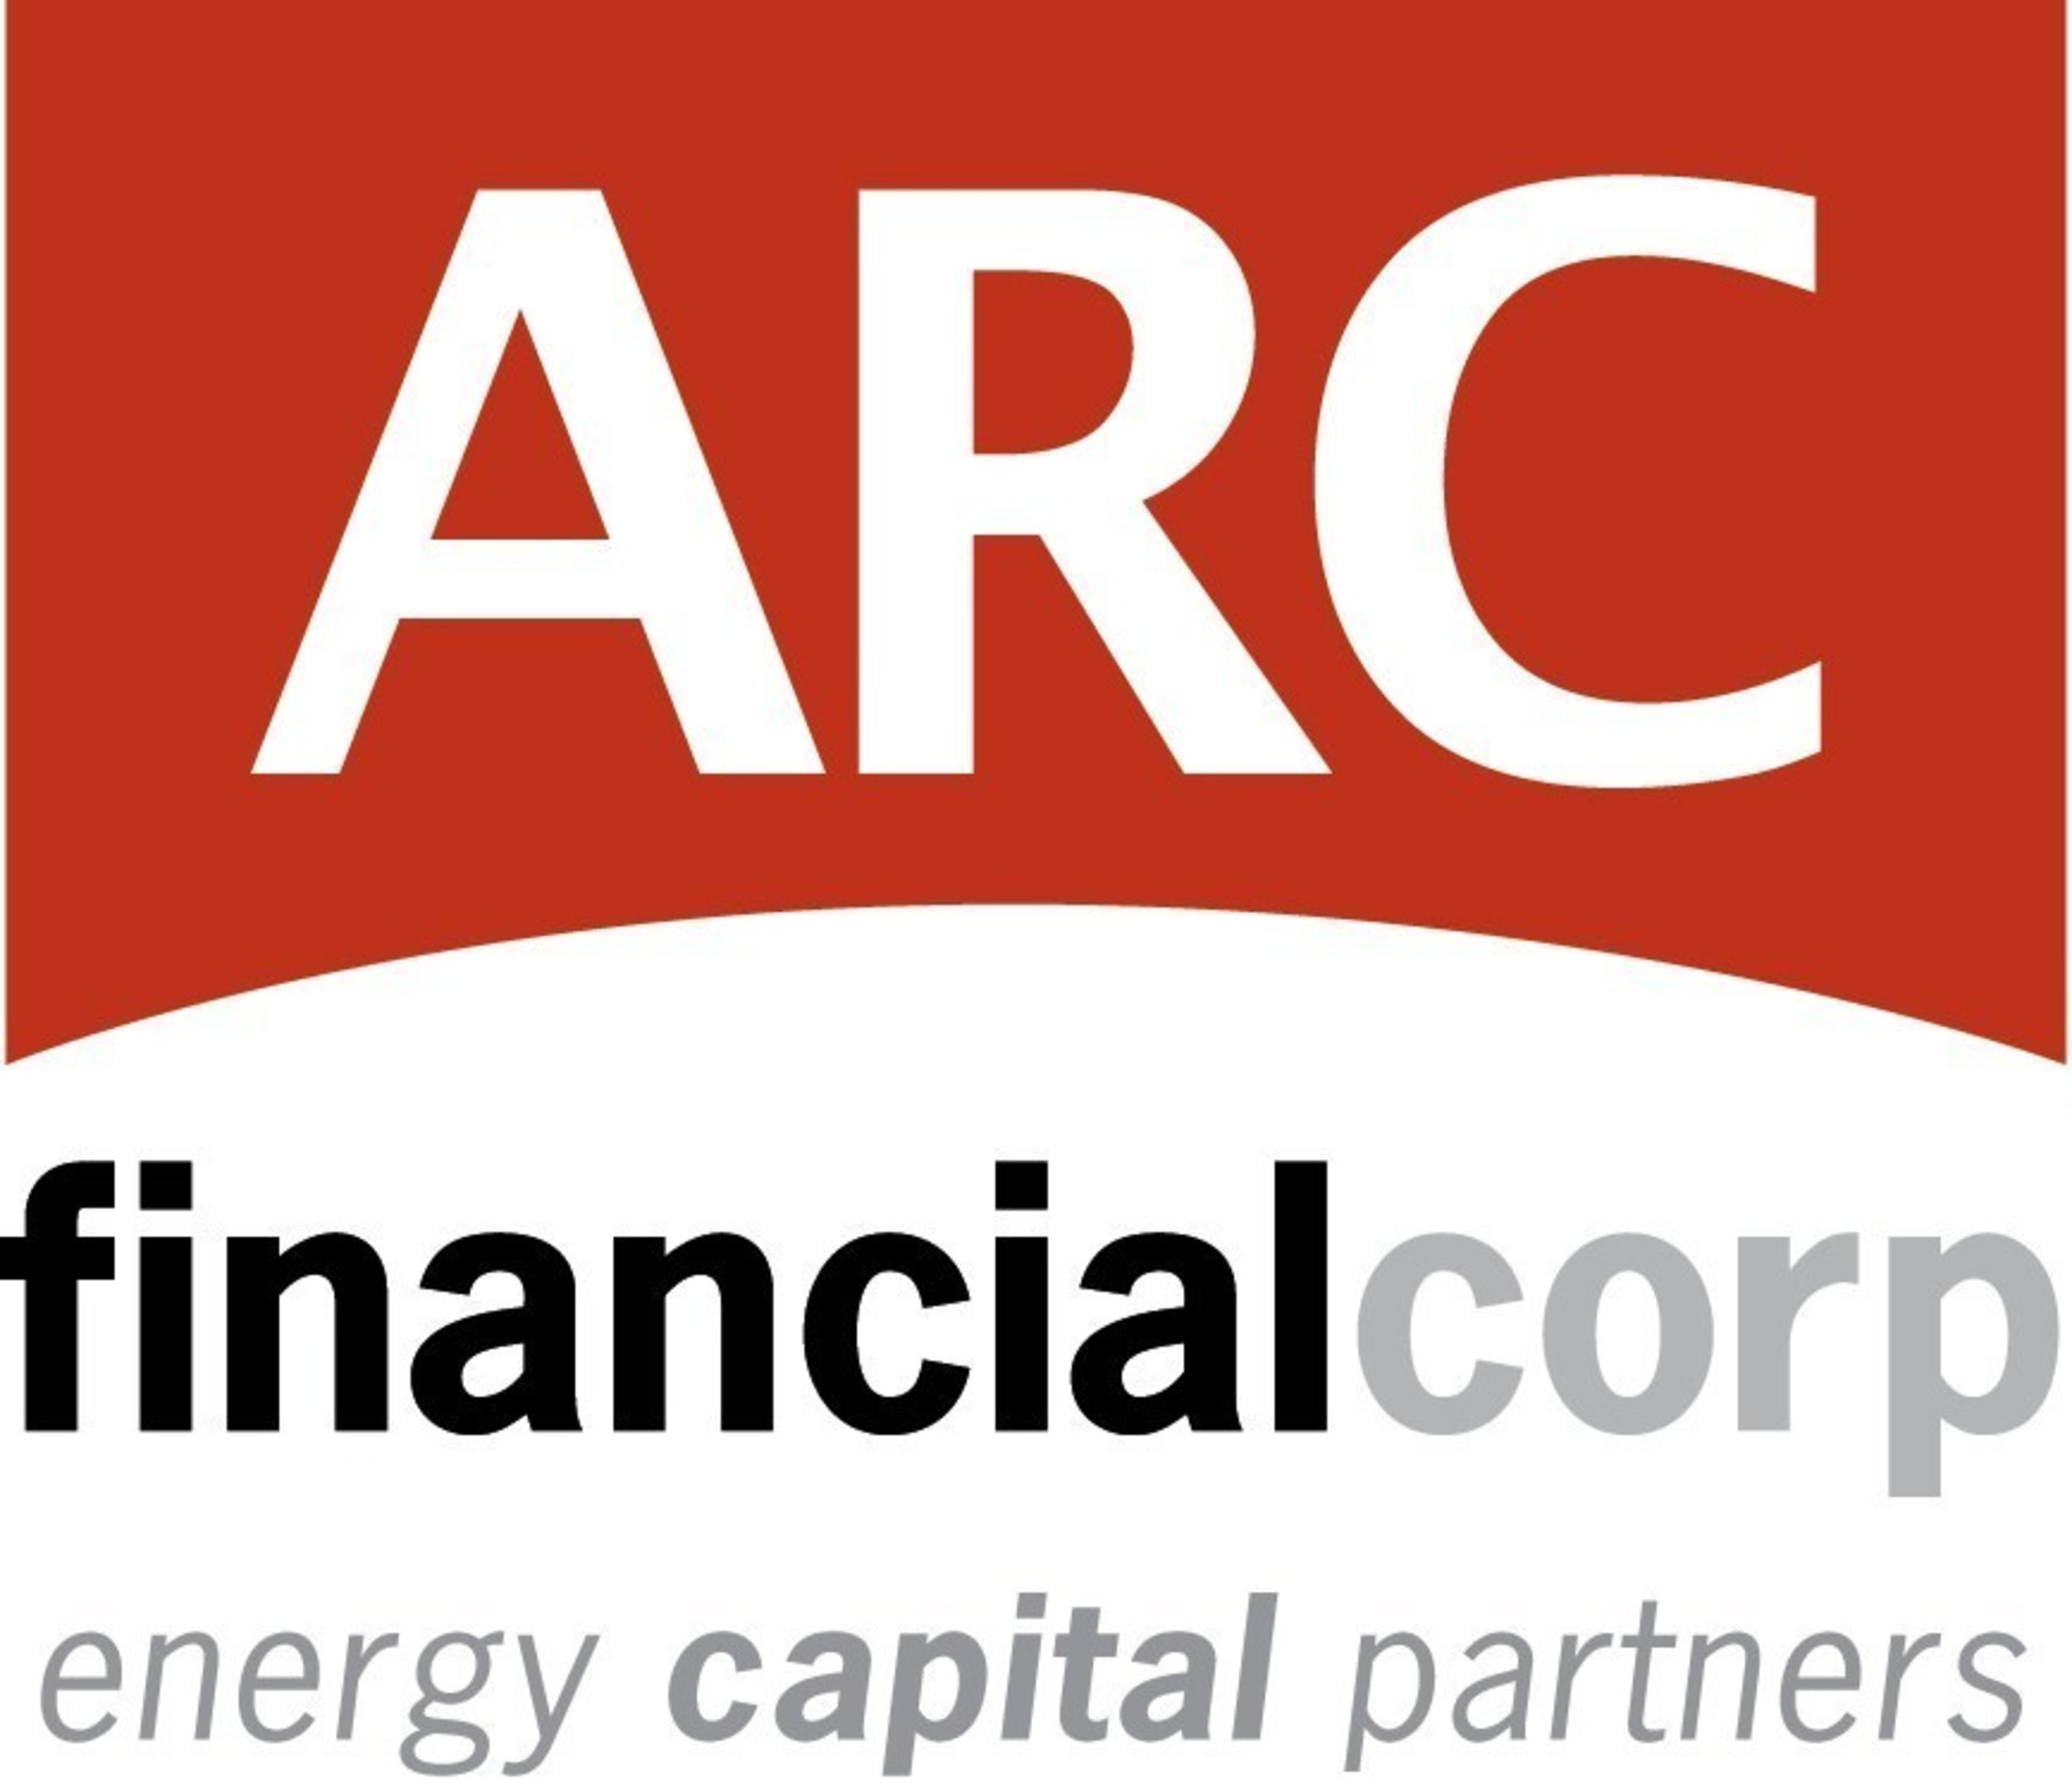 Investors Can Make a Rational Decision to Invest in Crude Oil Assets, ARC Financial Corp. Report